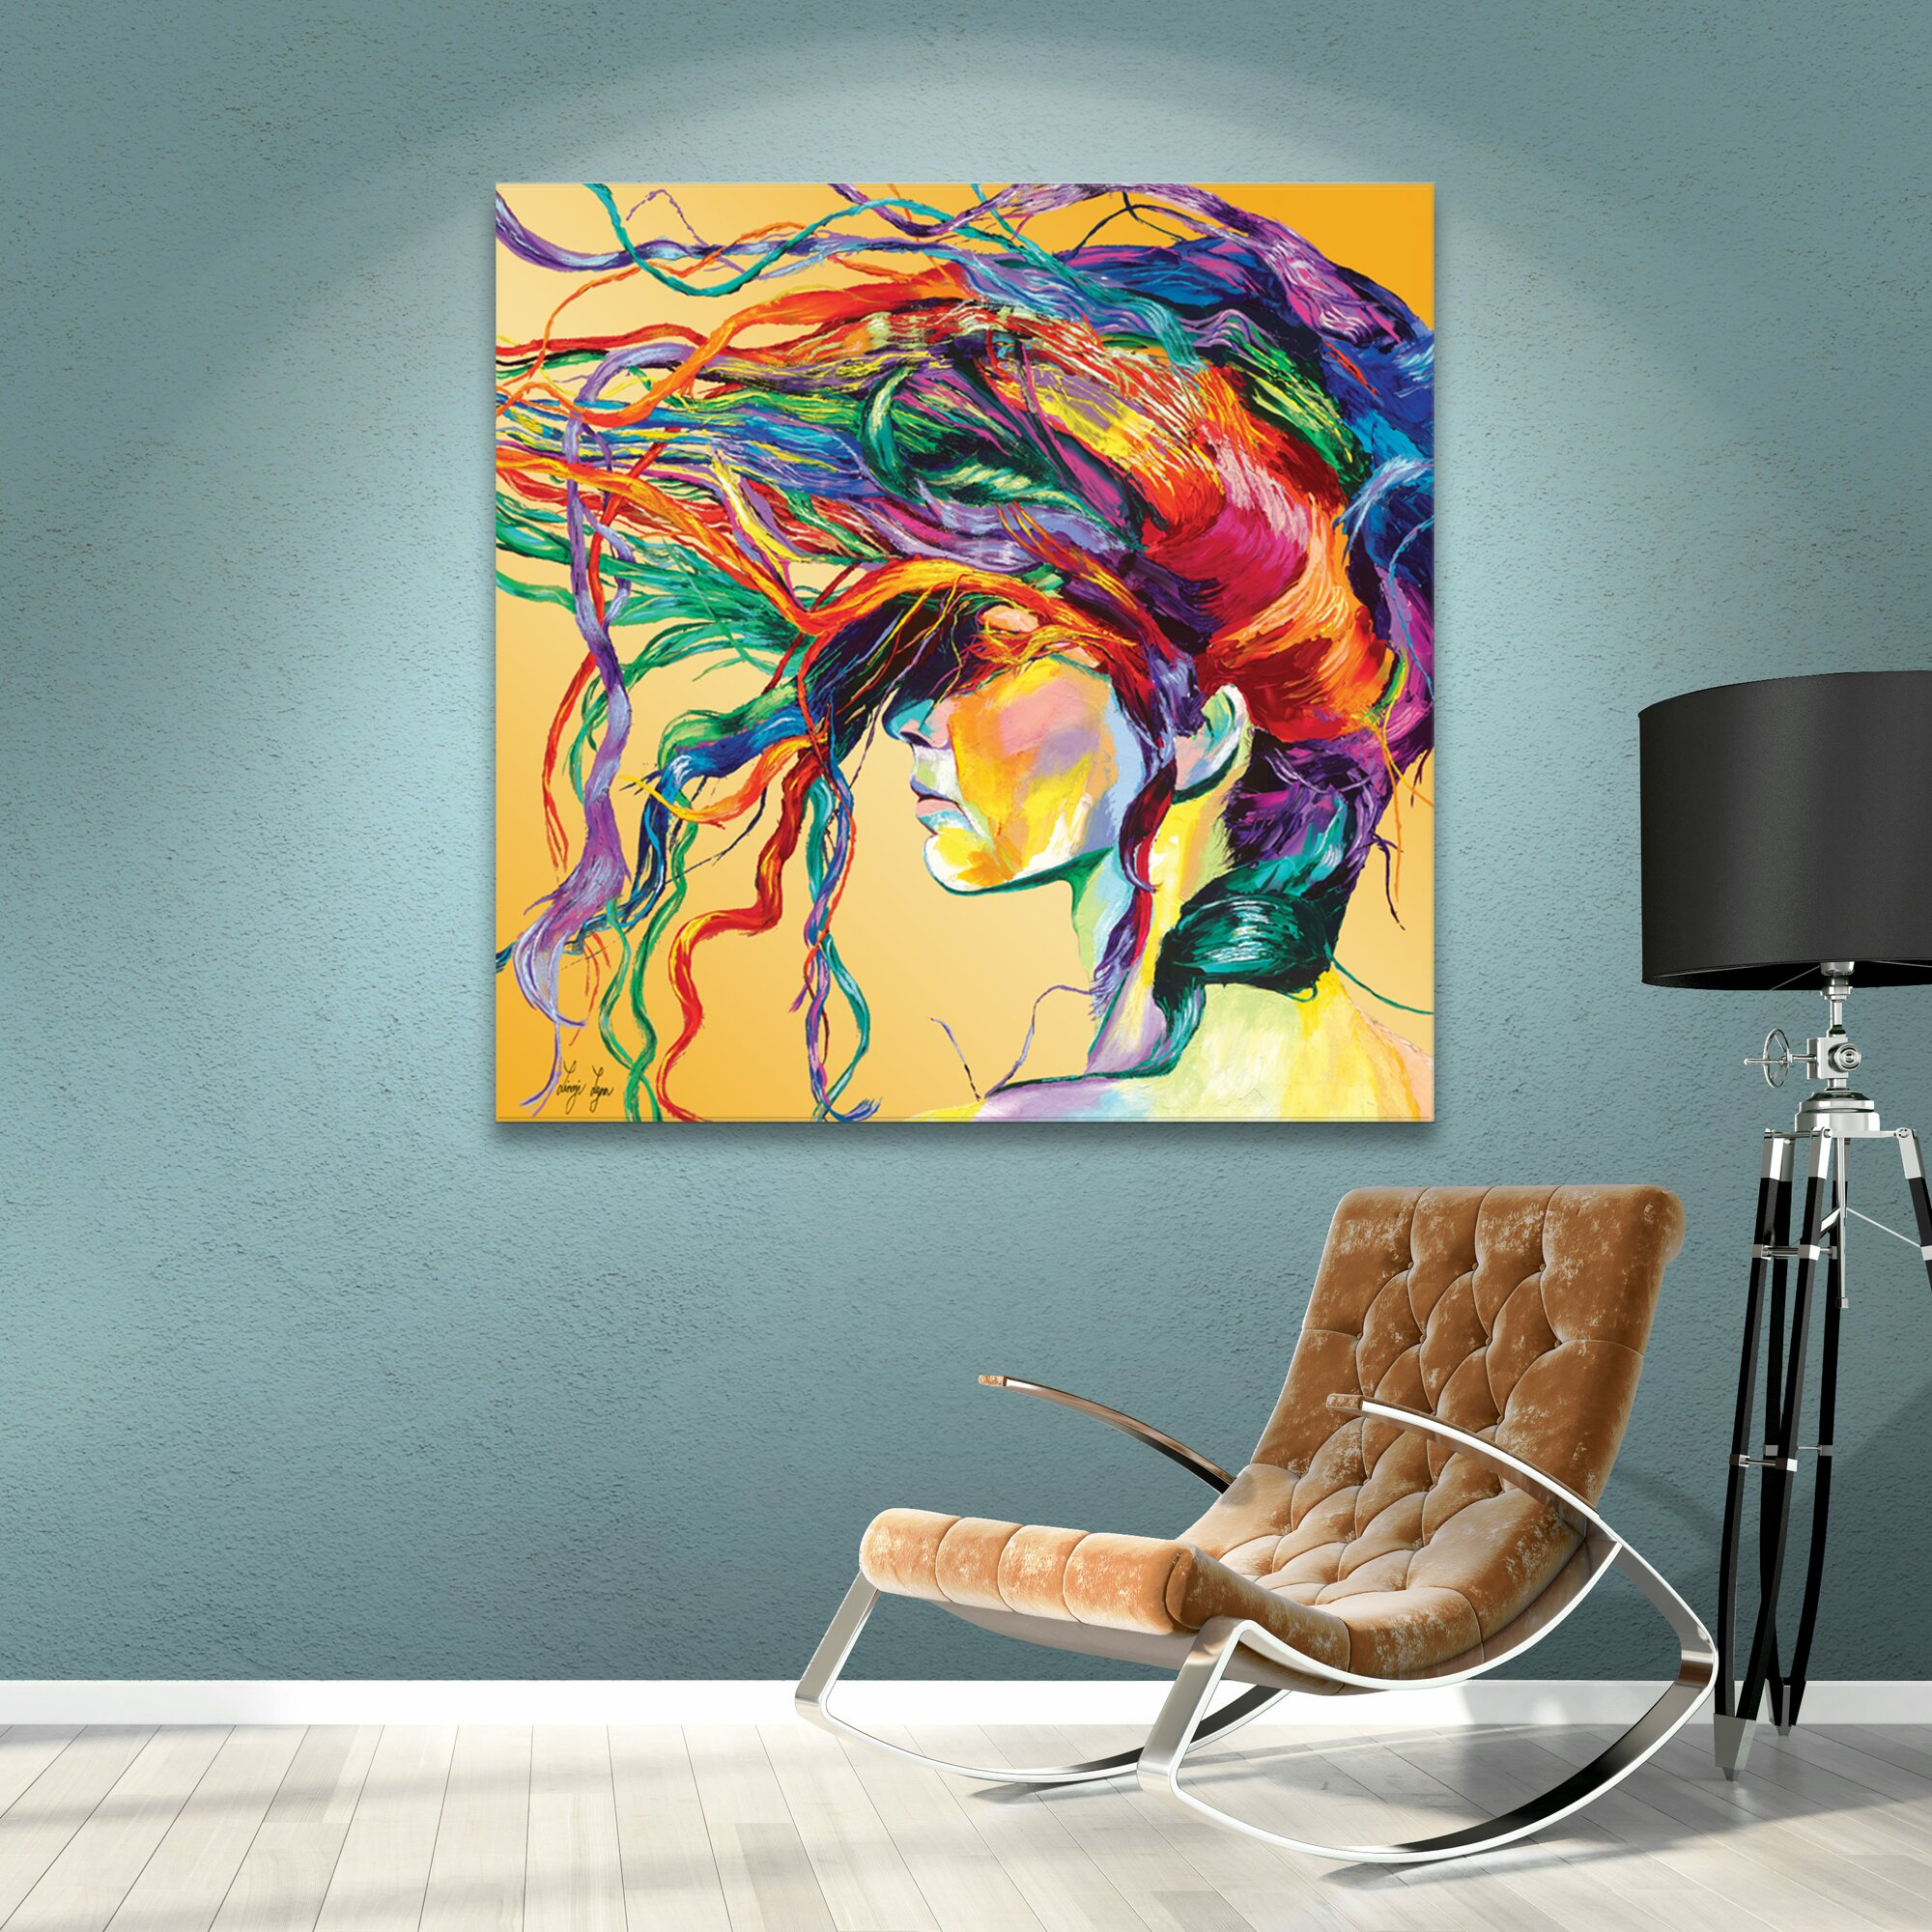 office cafeteria design enchanting model paint. office cafeteria design enchanting model paint windswept by linzi lynn framed graphic art print on r